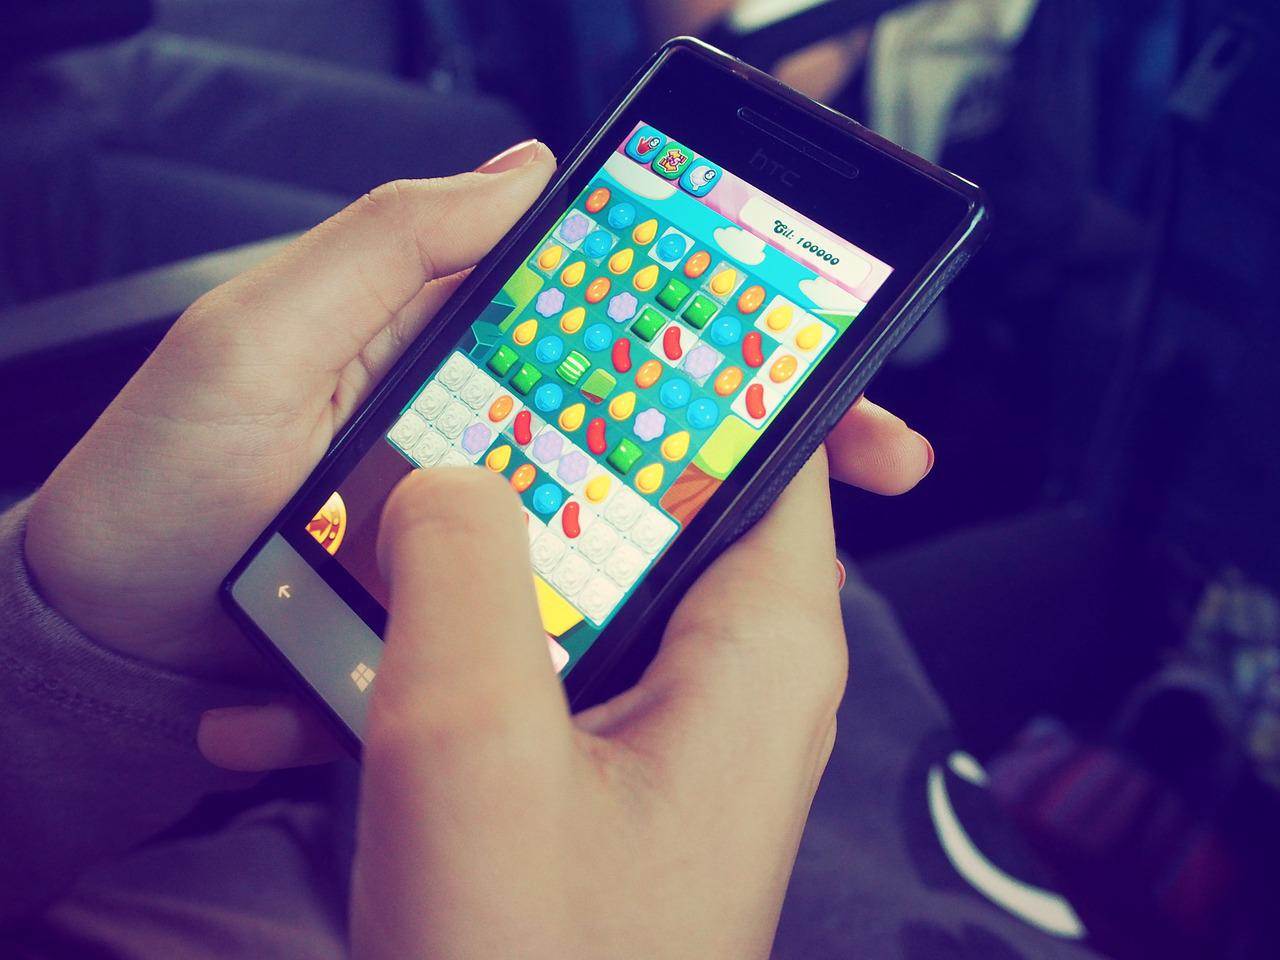 Candy Crush makes roughly $633,000 per day. This game is played by every seventh person in Hong Kong daily. A 14-year-old boy spent $4,300 on boosts and extra moves.